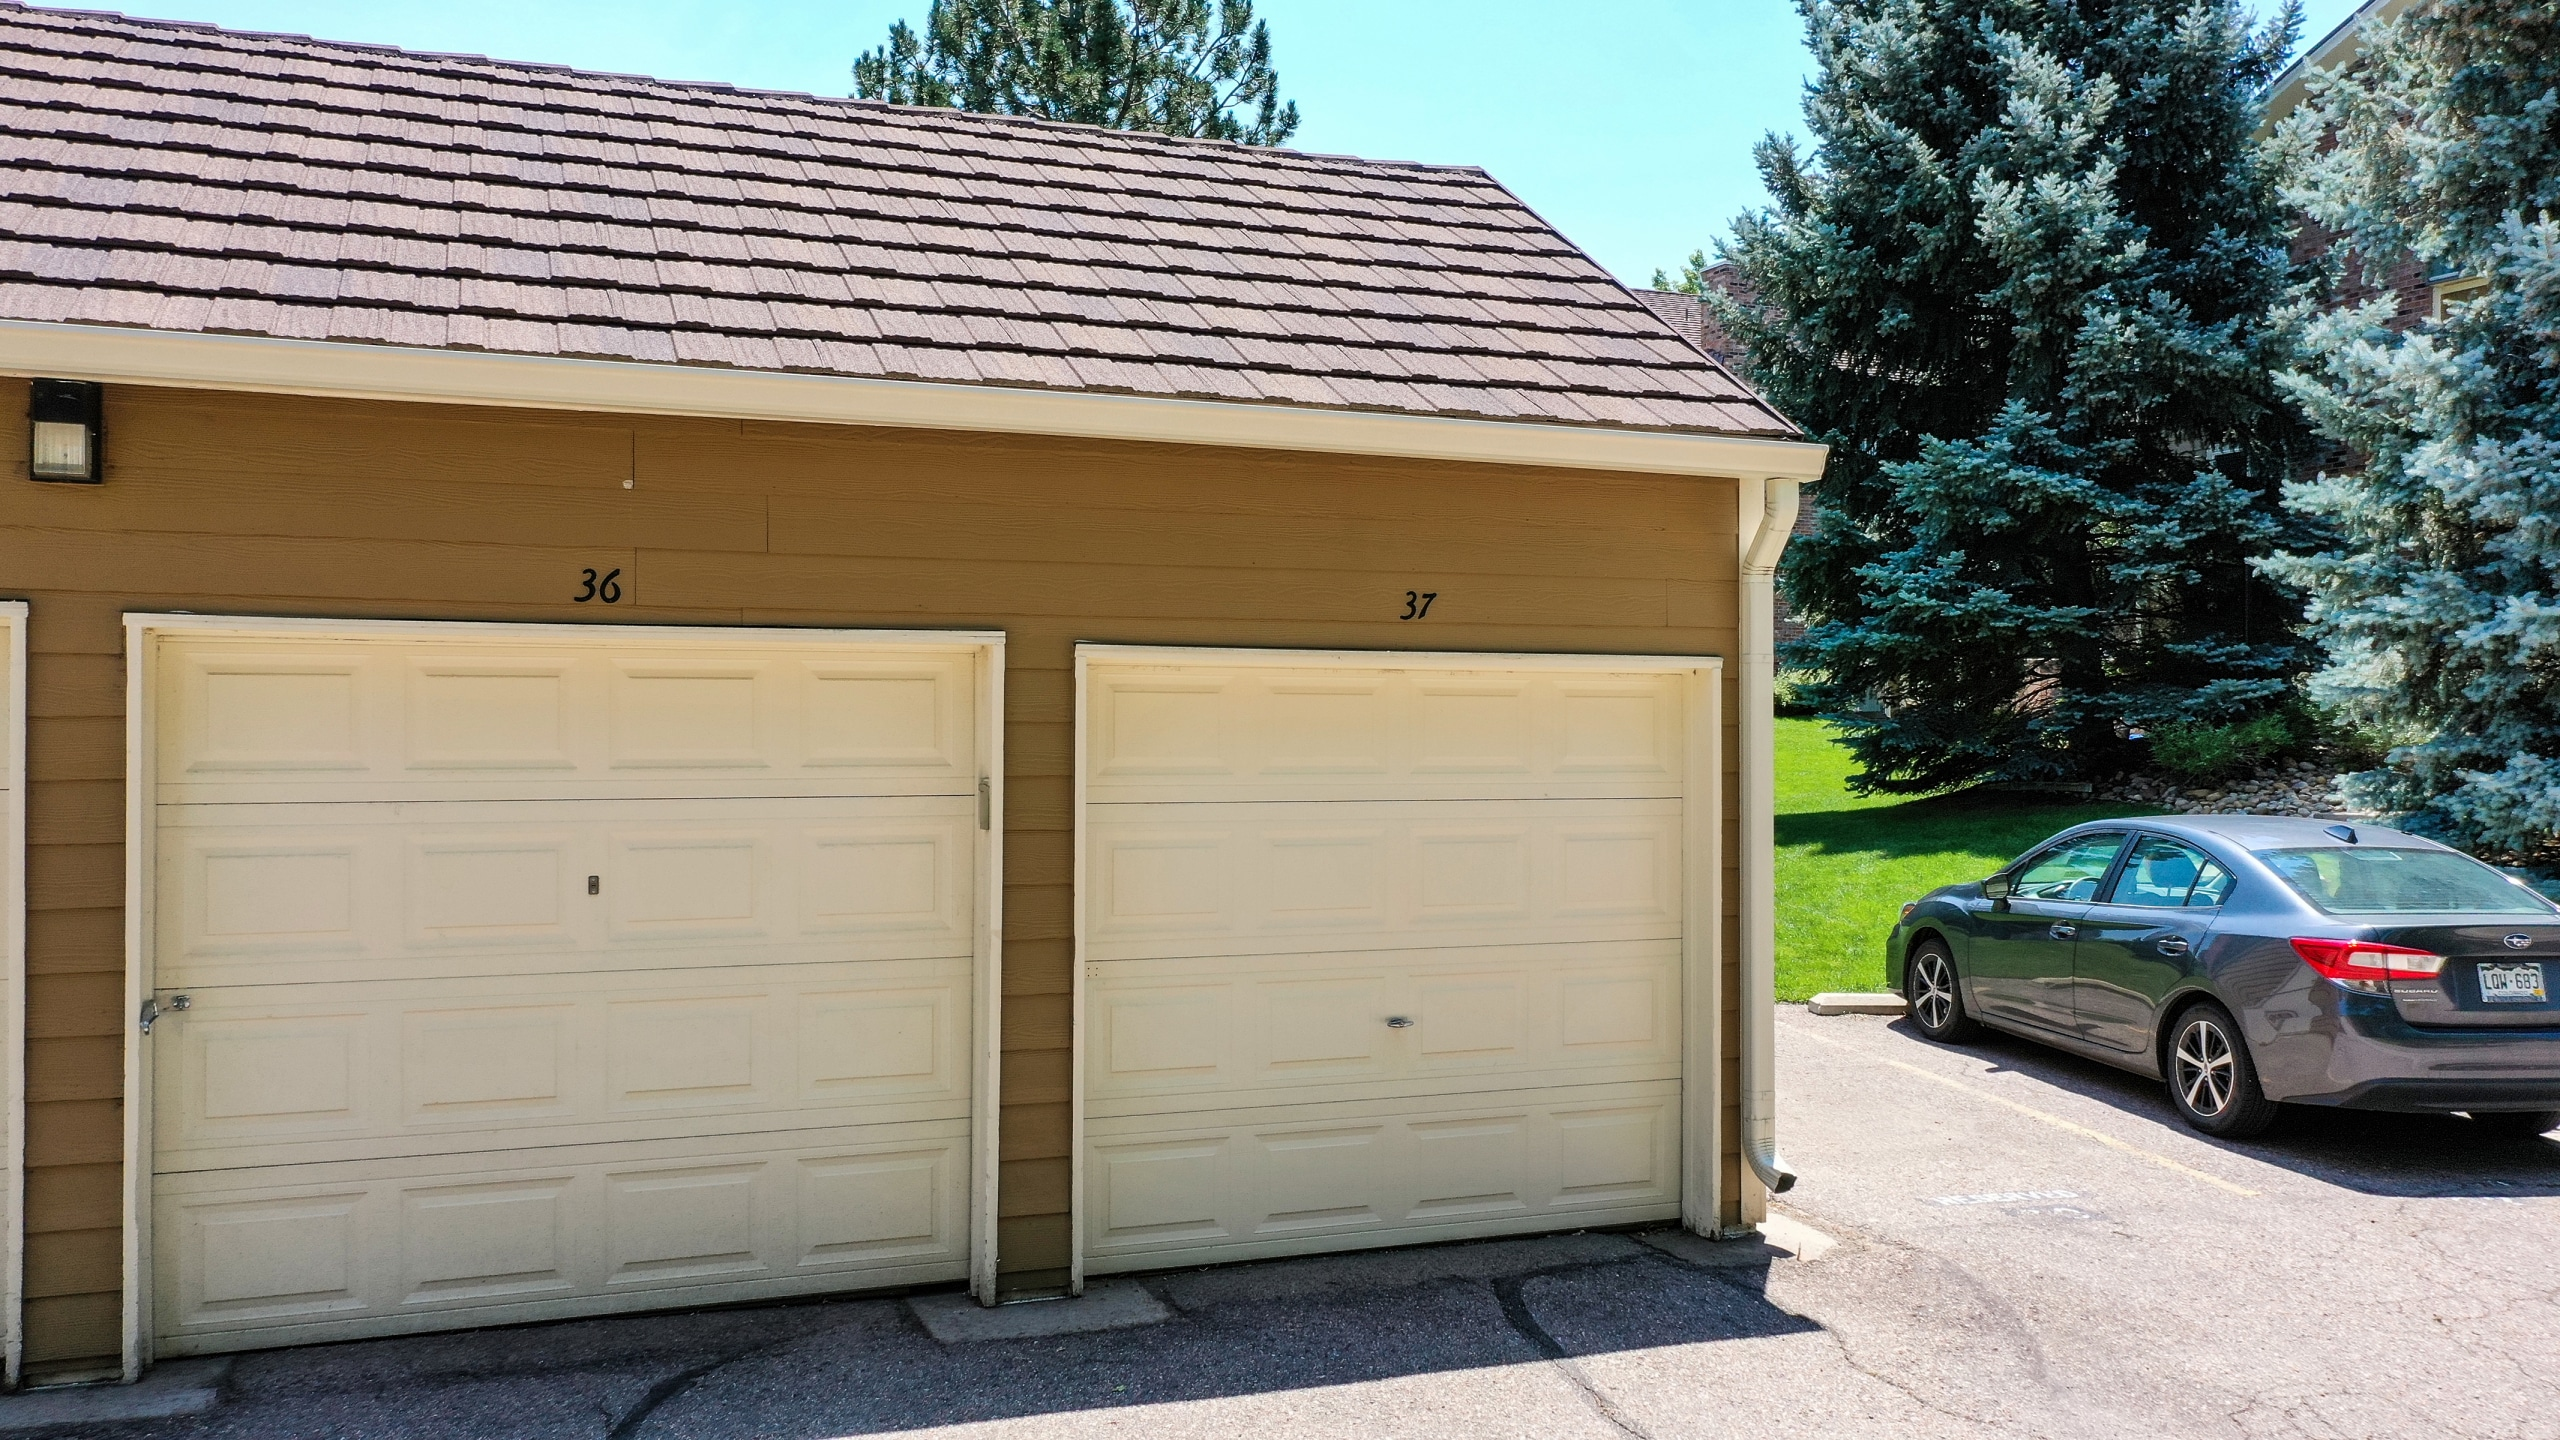 Garage Space 37 Single Car Garage Comes With the Condo For Sale.